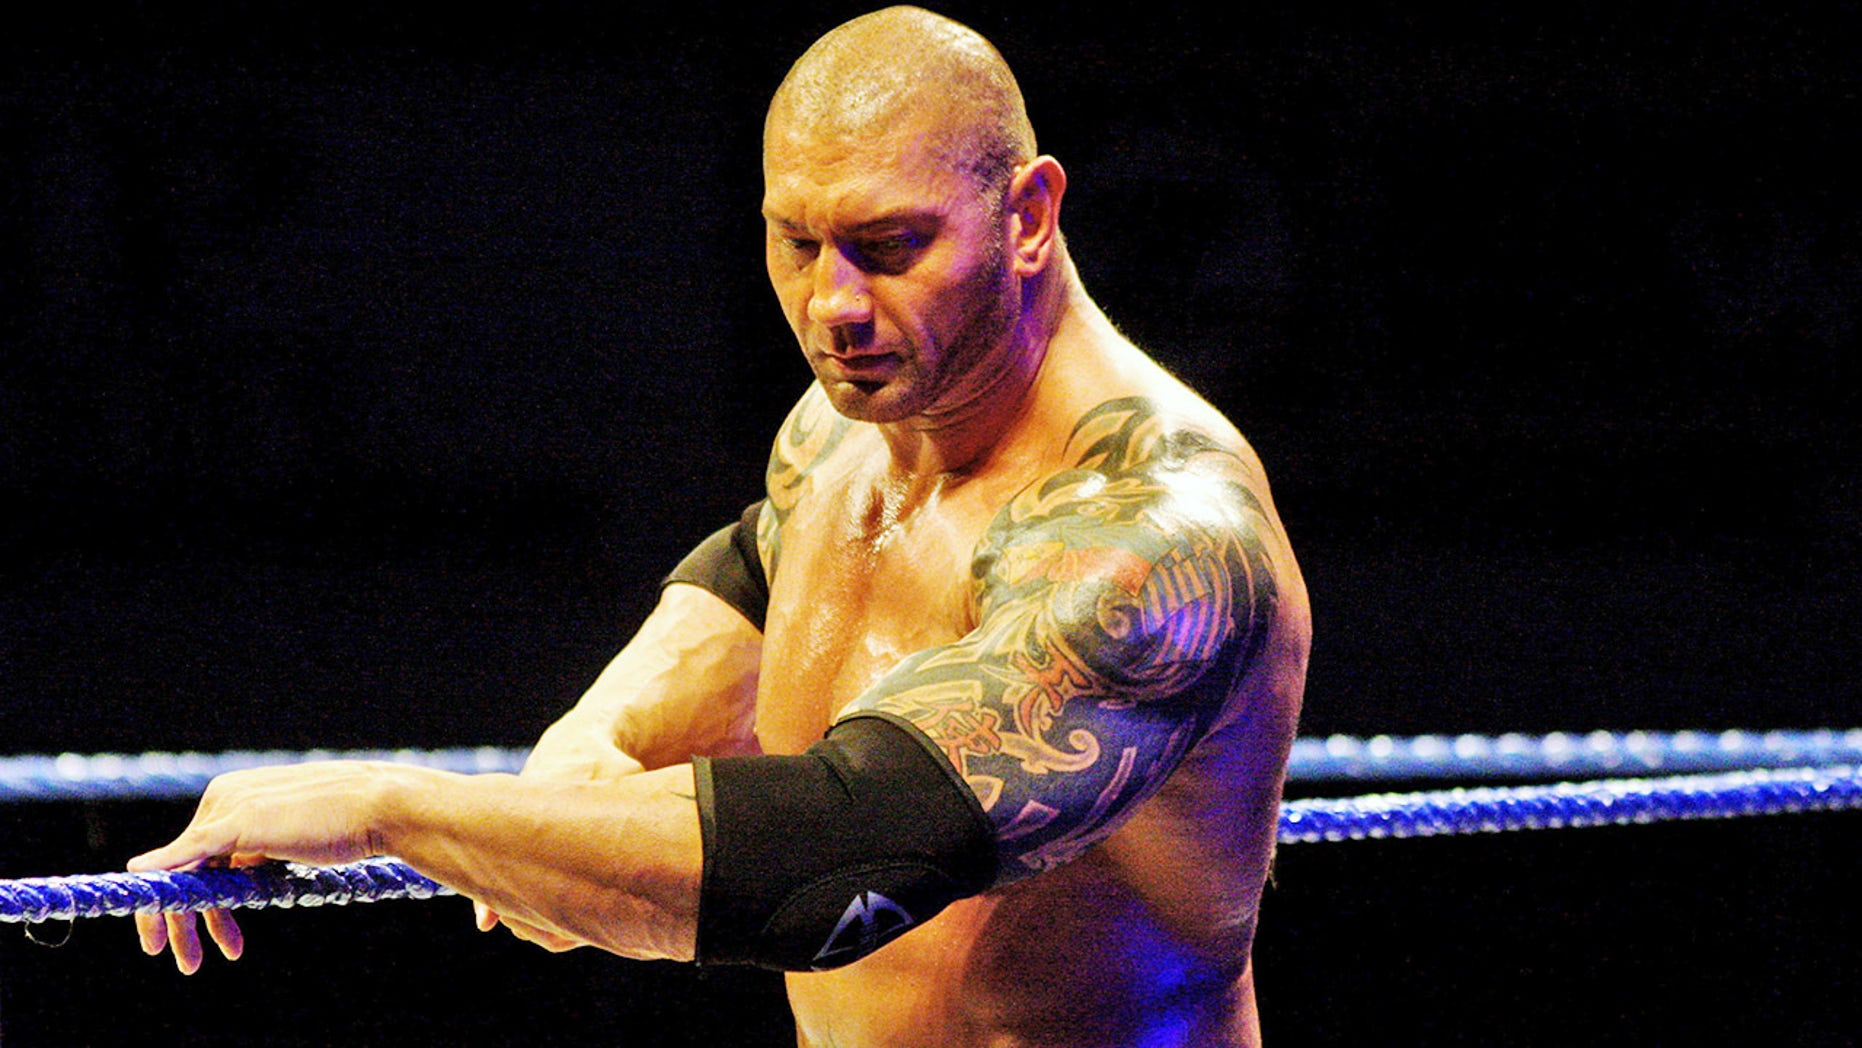 Dave Bautista announced his retirement from sports entertainment after WWE WrestleMania 35.